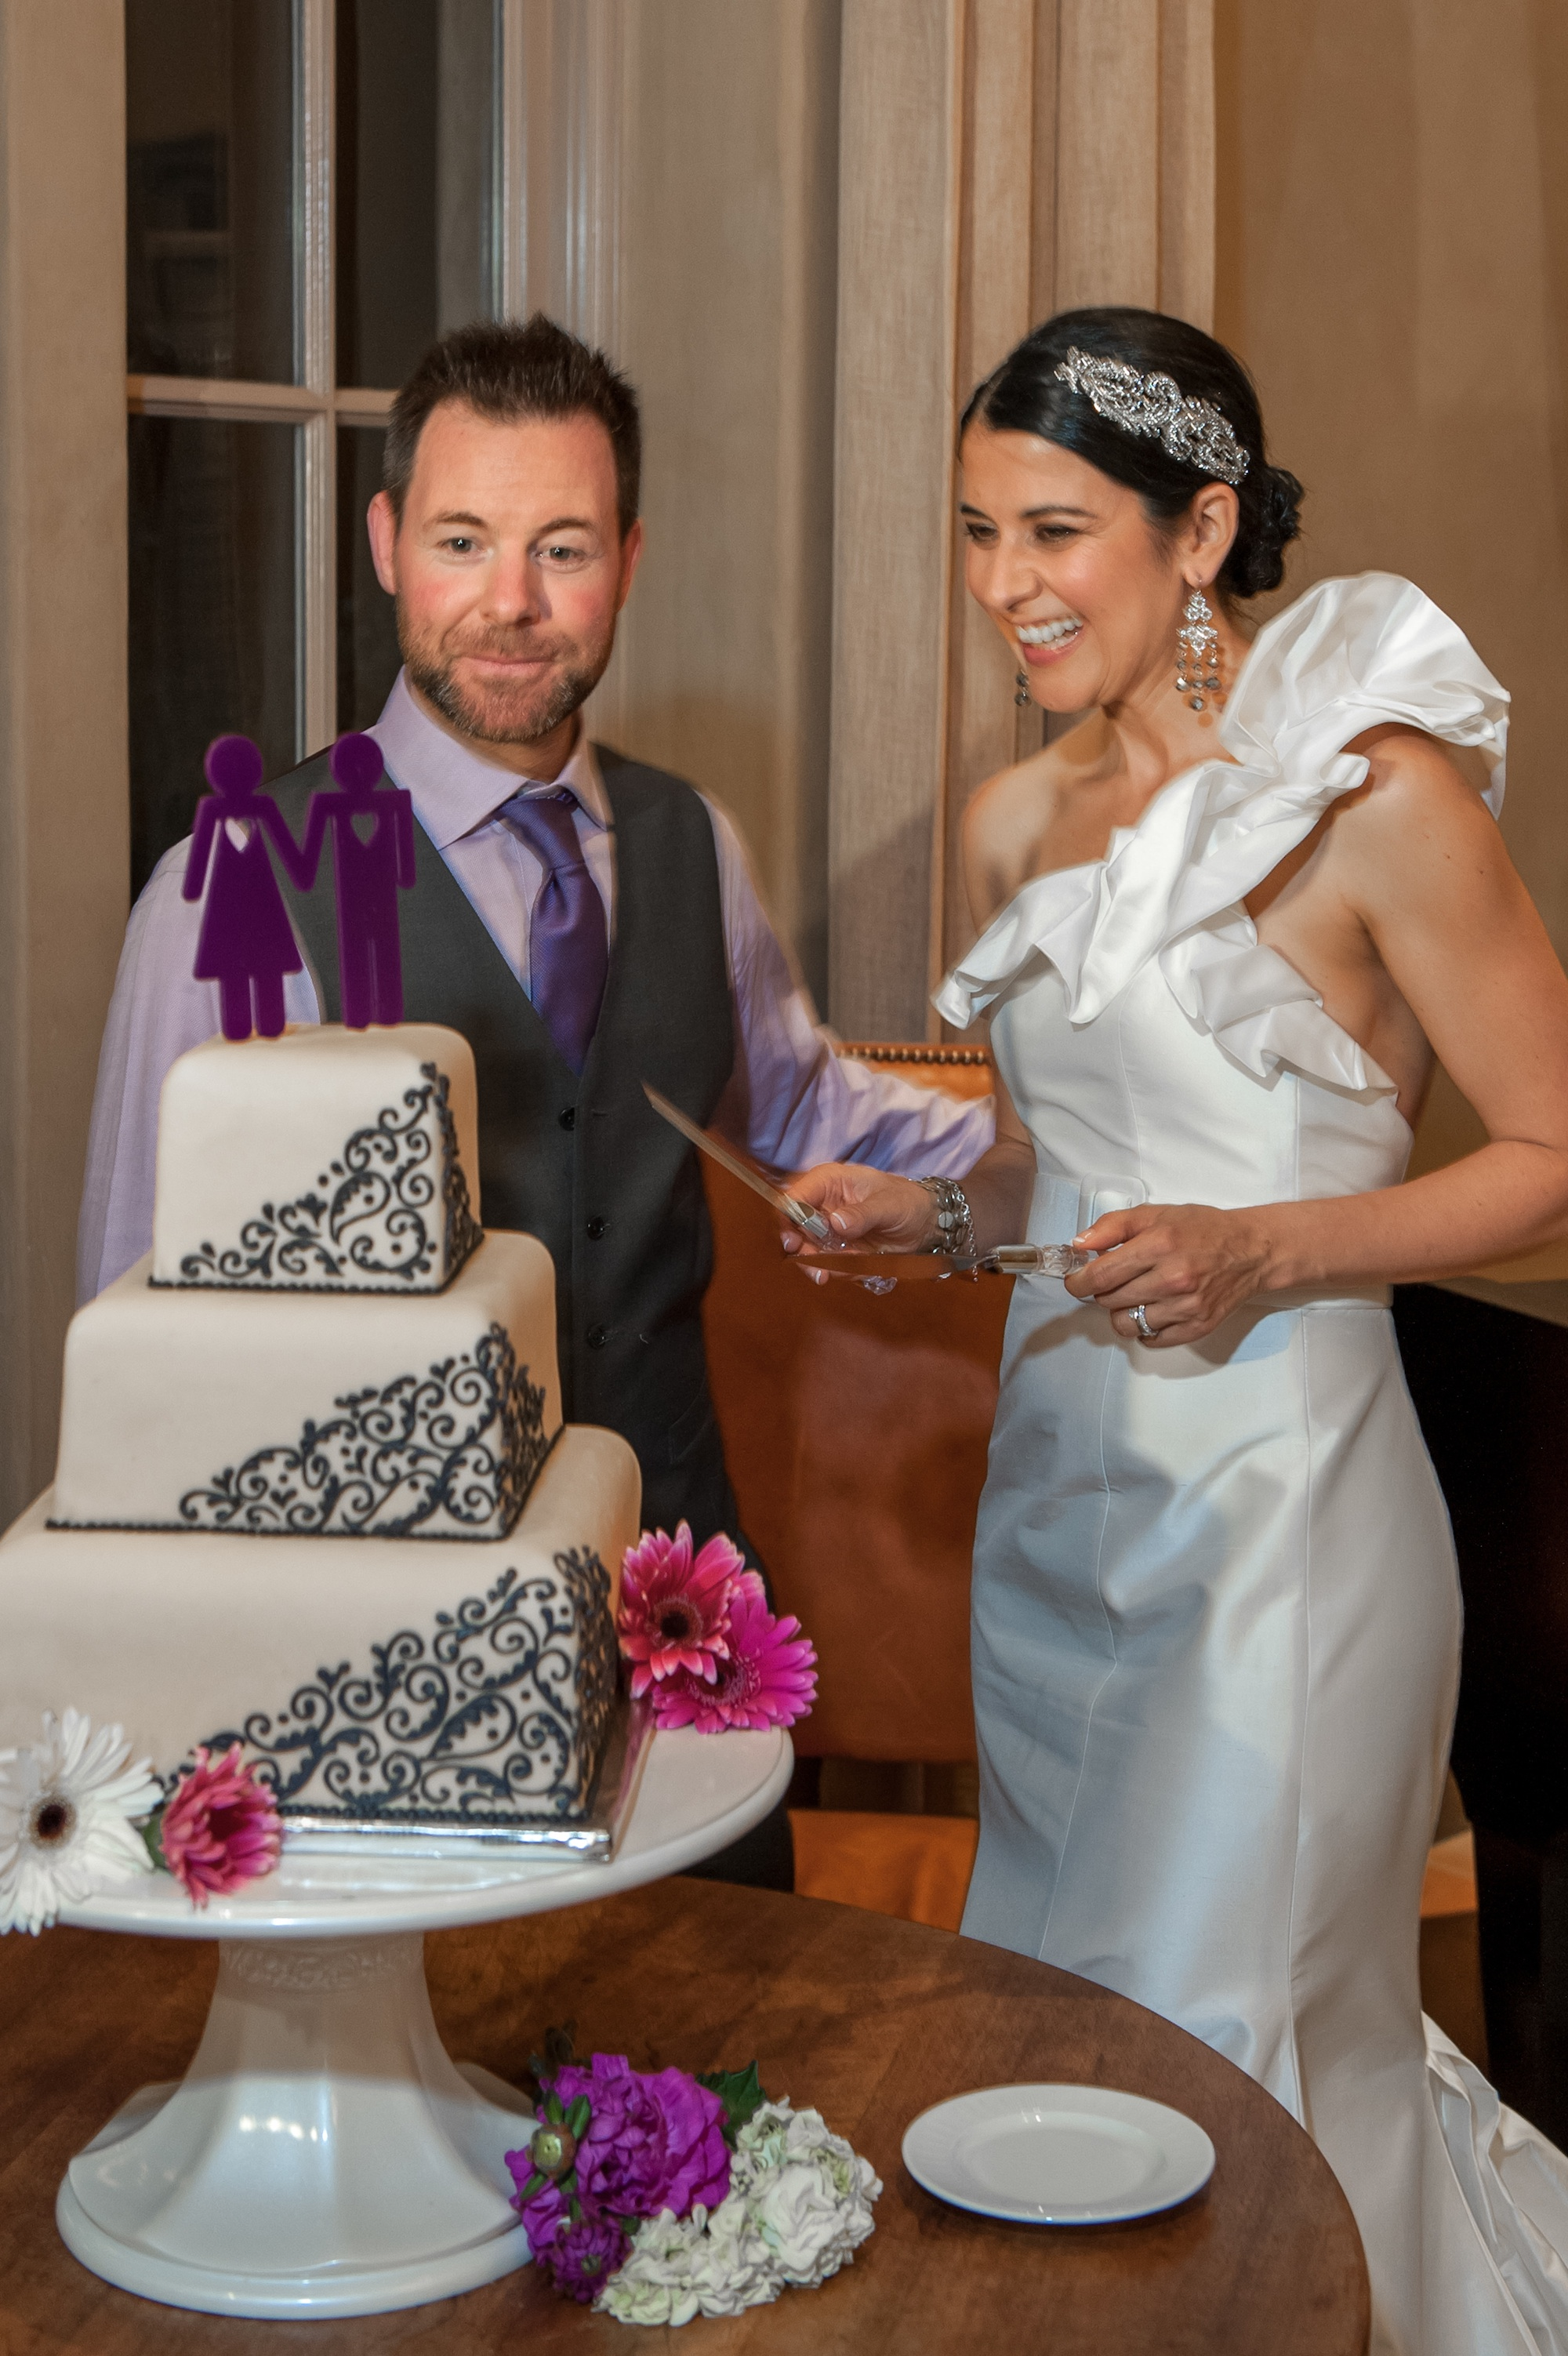 cake cutting resized